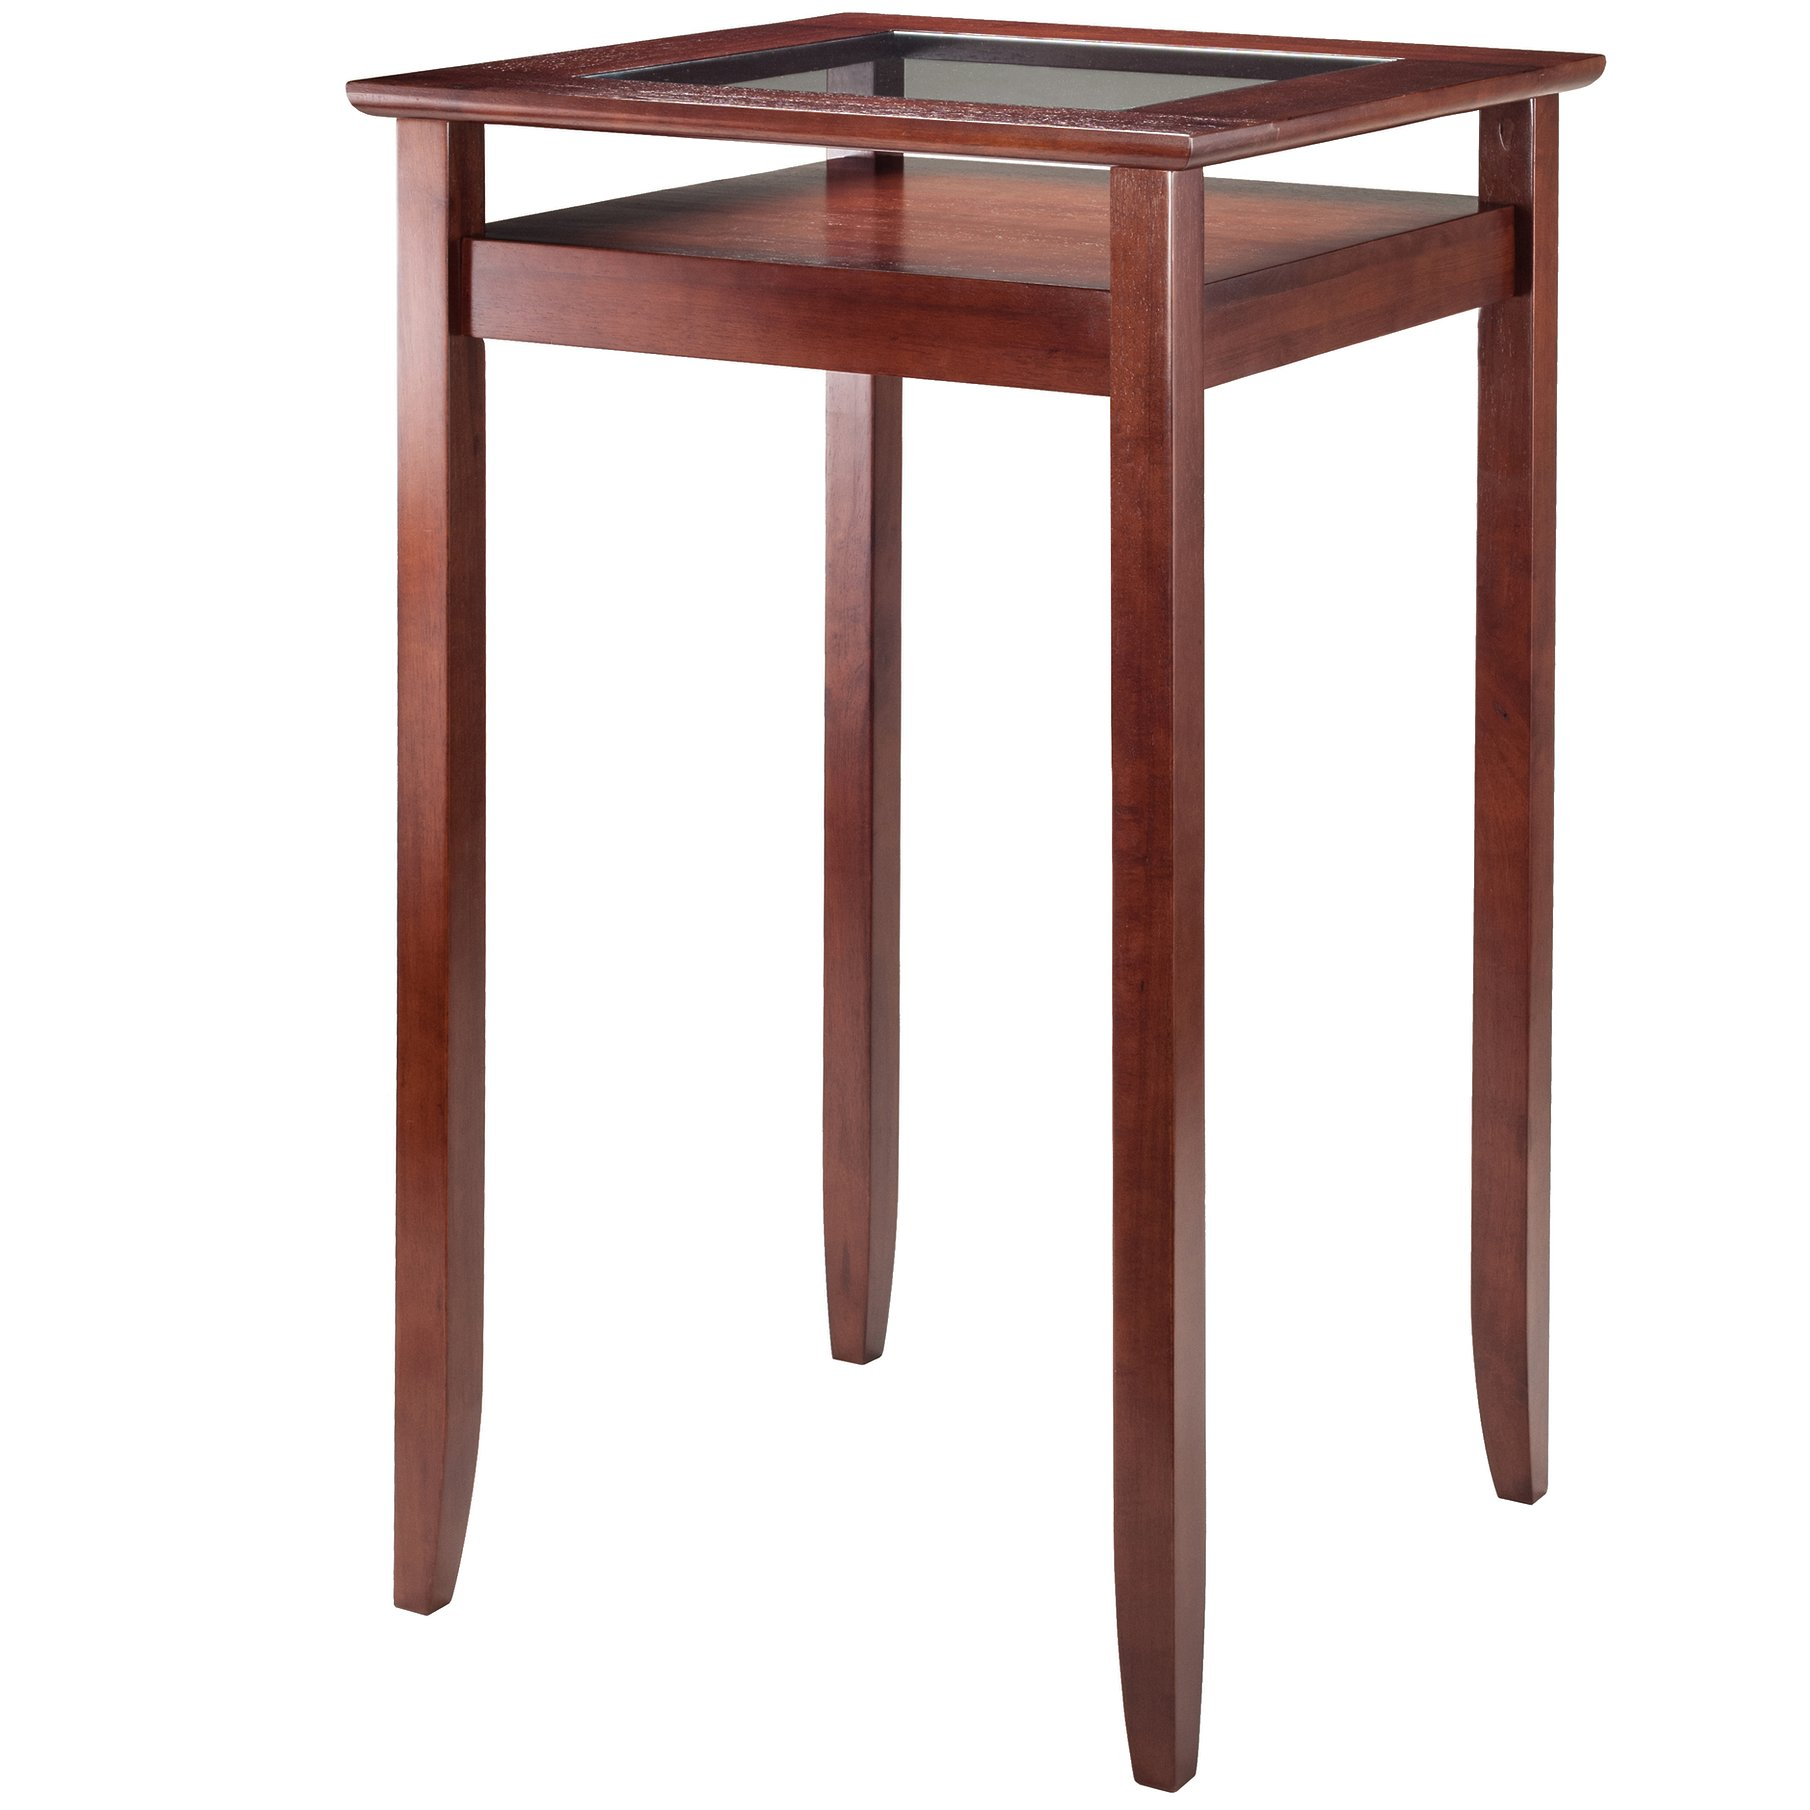 winsome wood transitional walnut solid and glass bar stool accent table marble metal coffee waterproof cover for garden chairs sheesham dining upholstered chair small contemporary